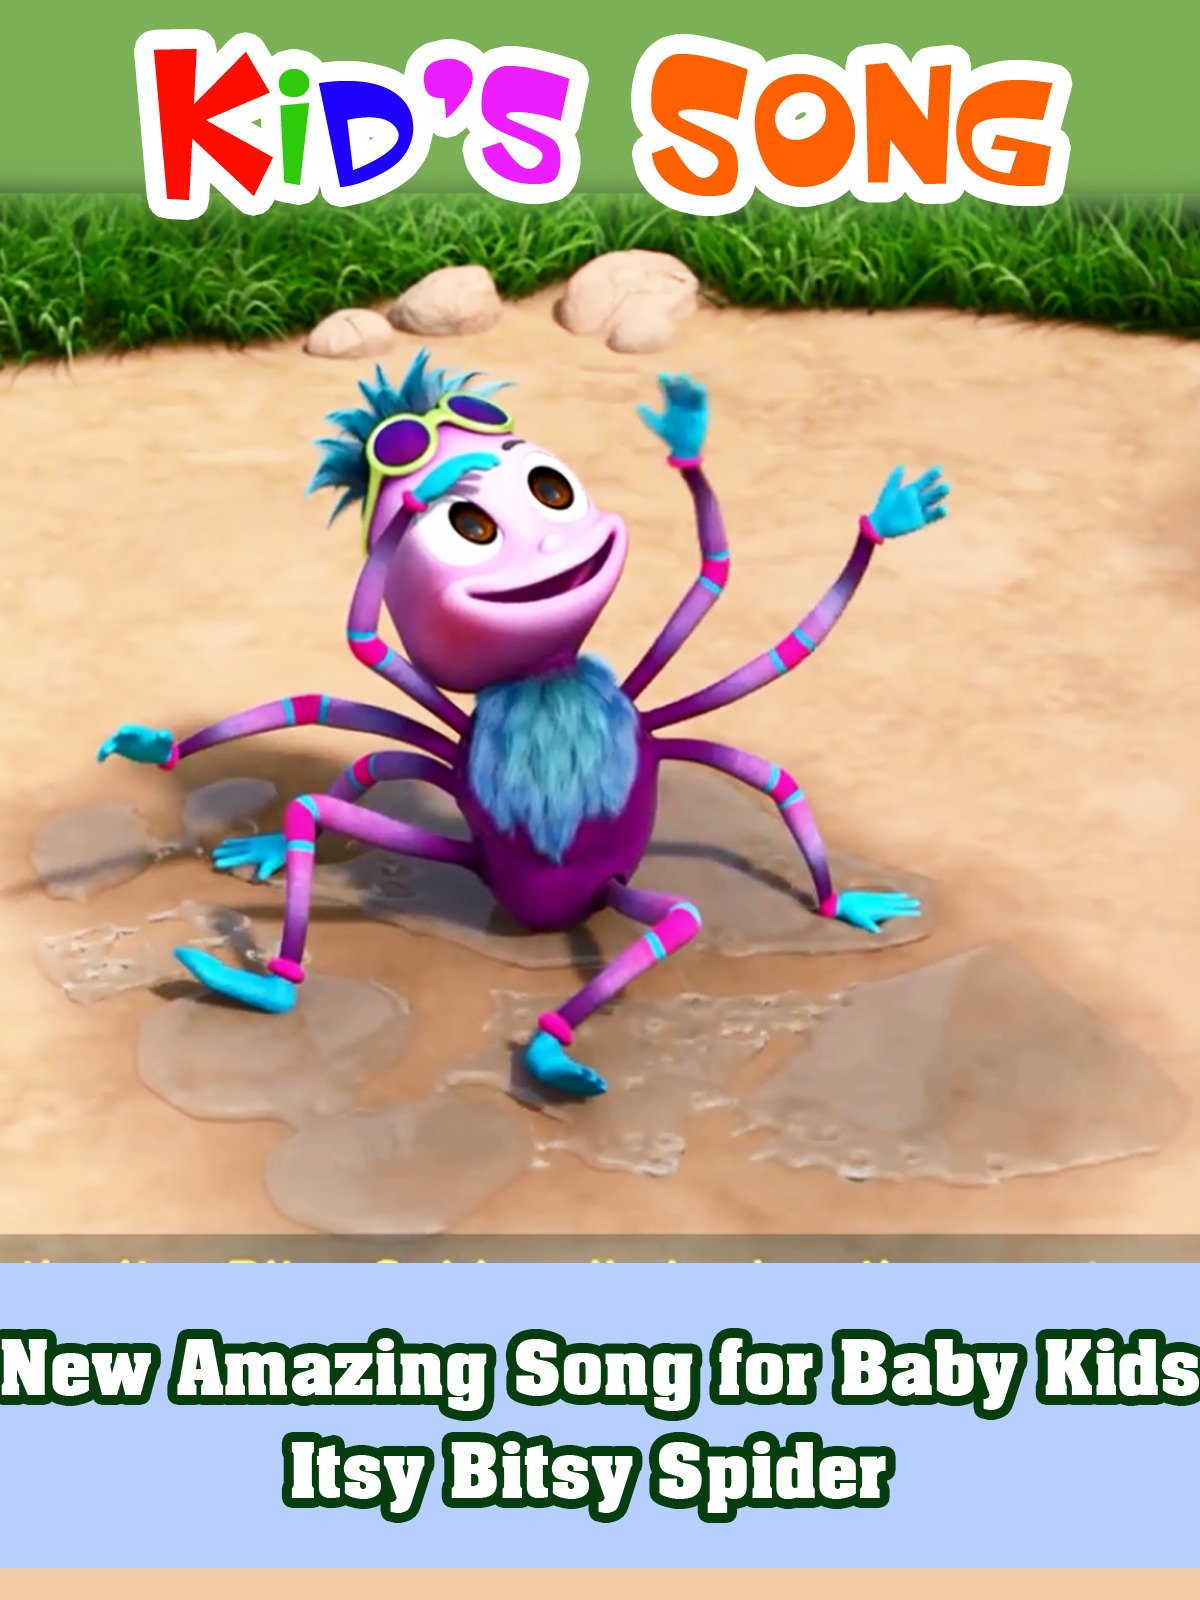 New Amazing Song for Baby Kids